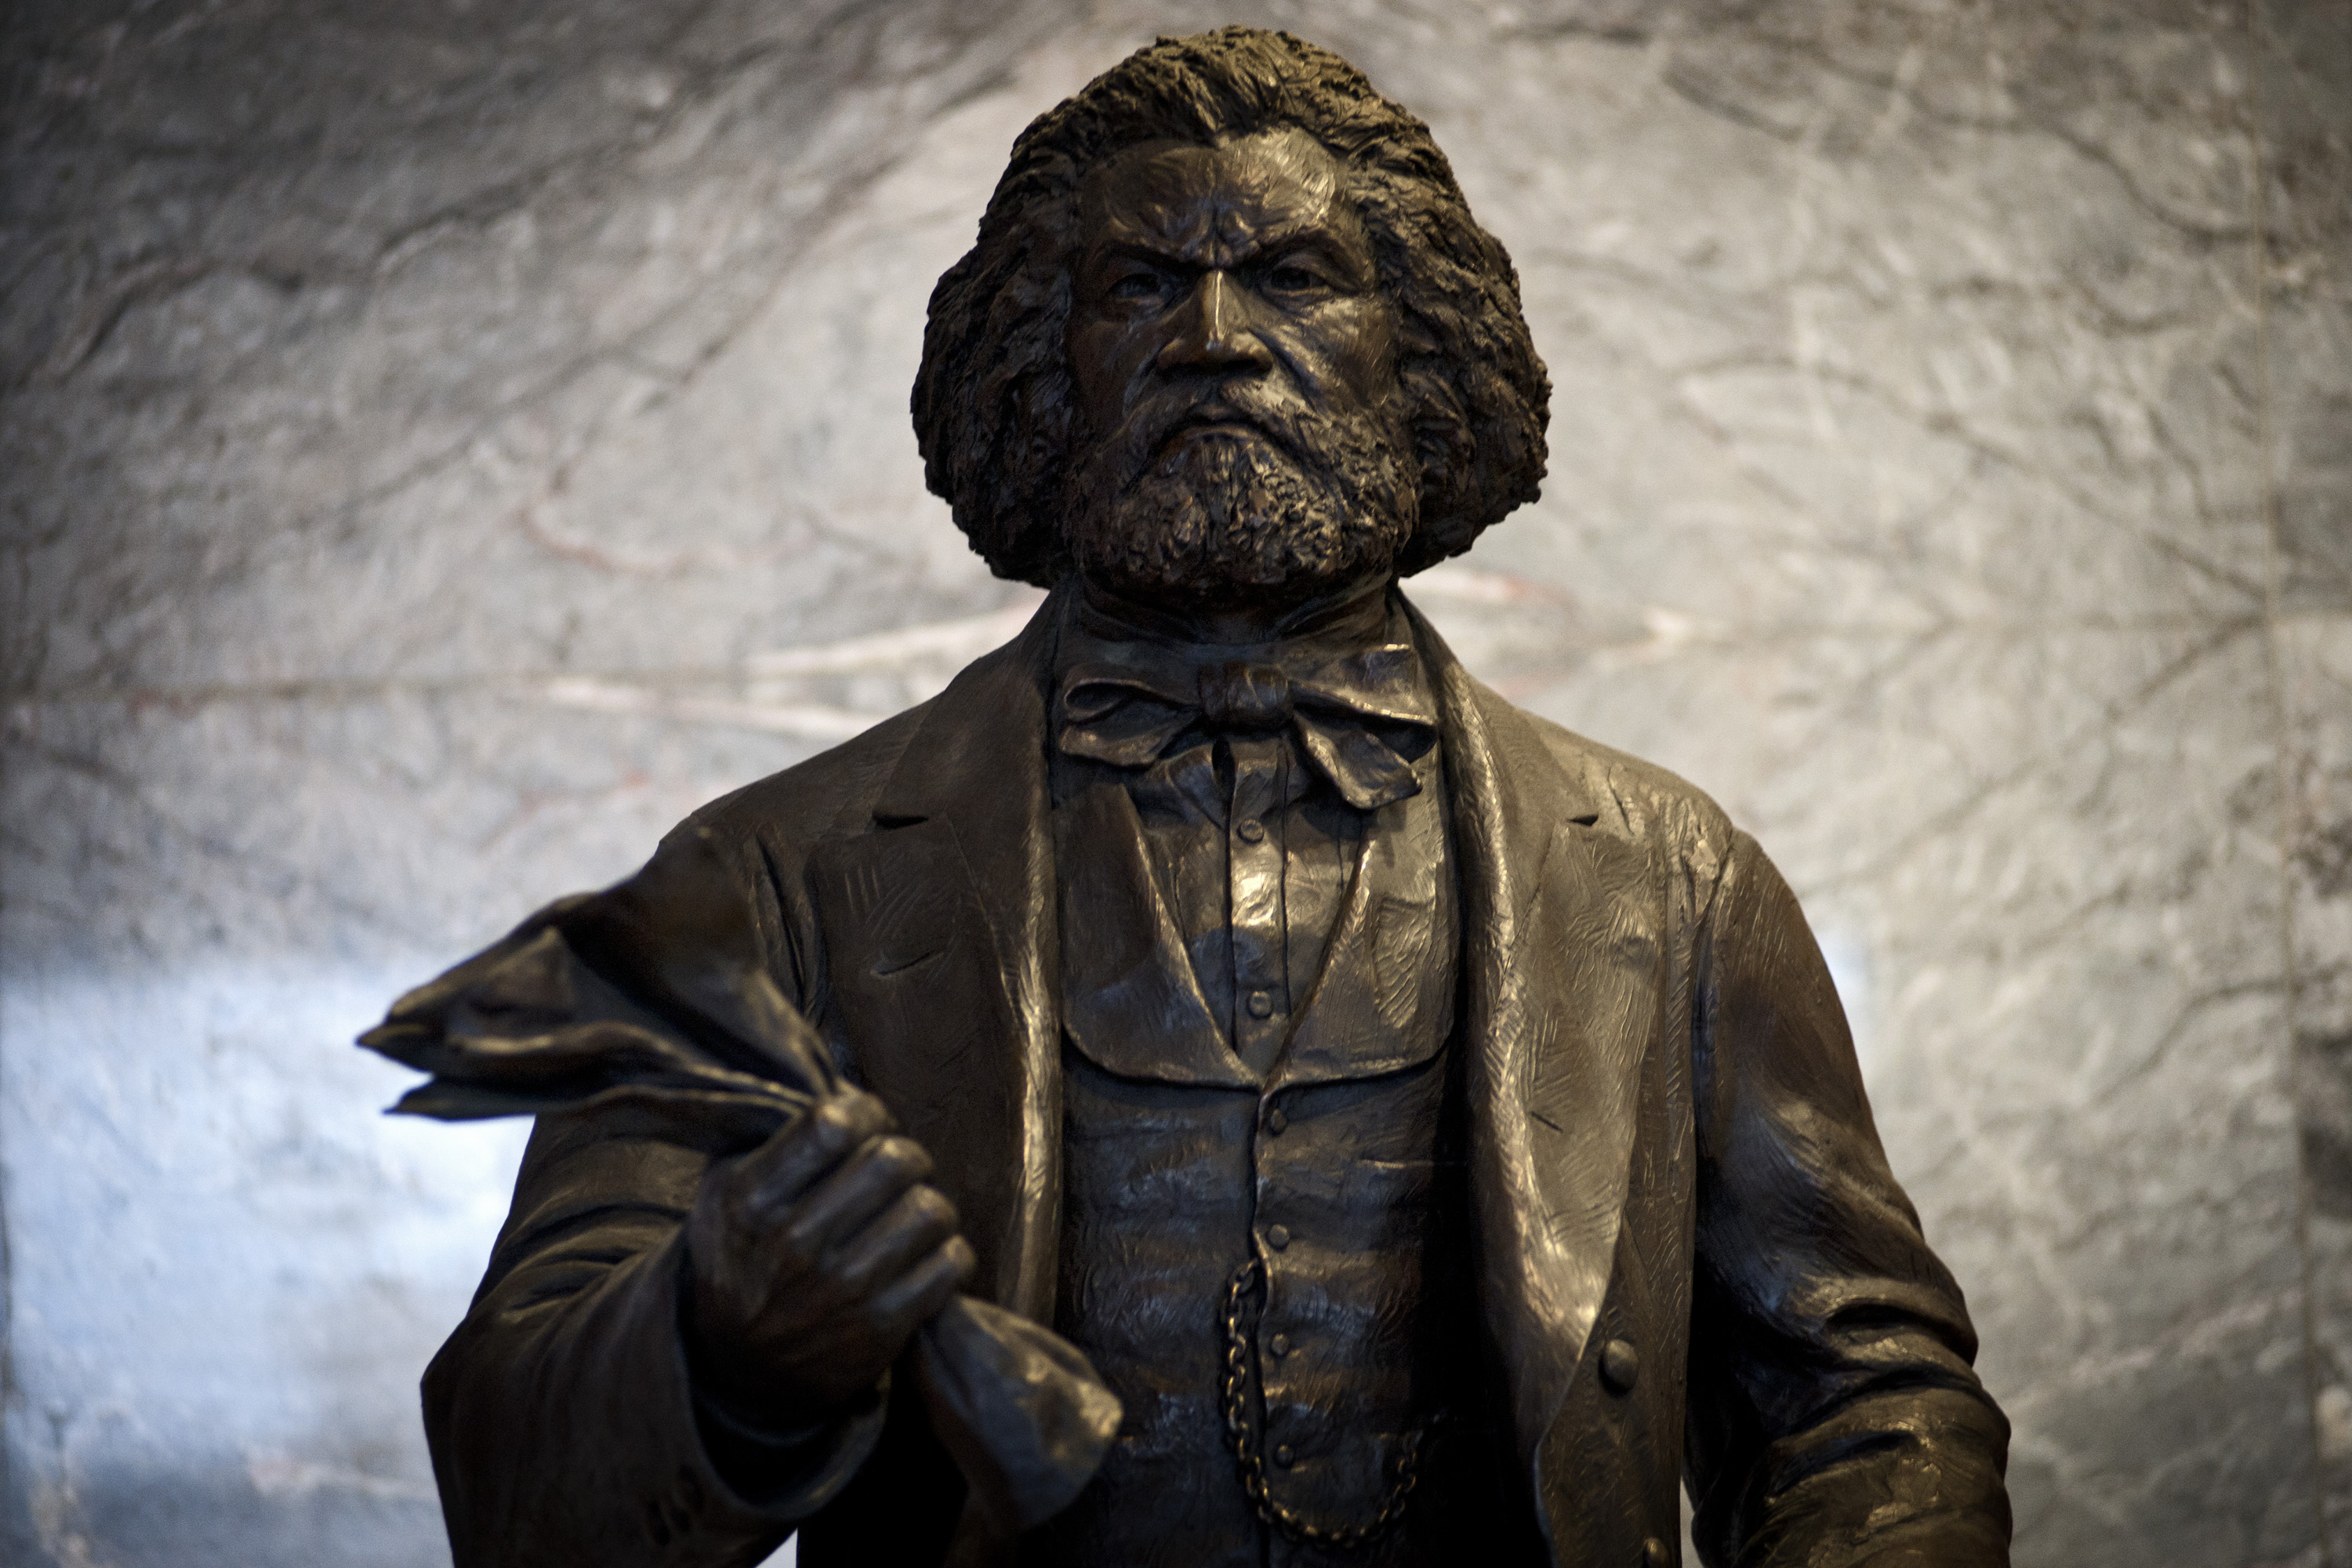 A statue of Frederick Douglass on display in the U.S. Capitol complex. (Credit: James Lawler Duggan/MCT via Getty Images)